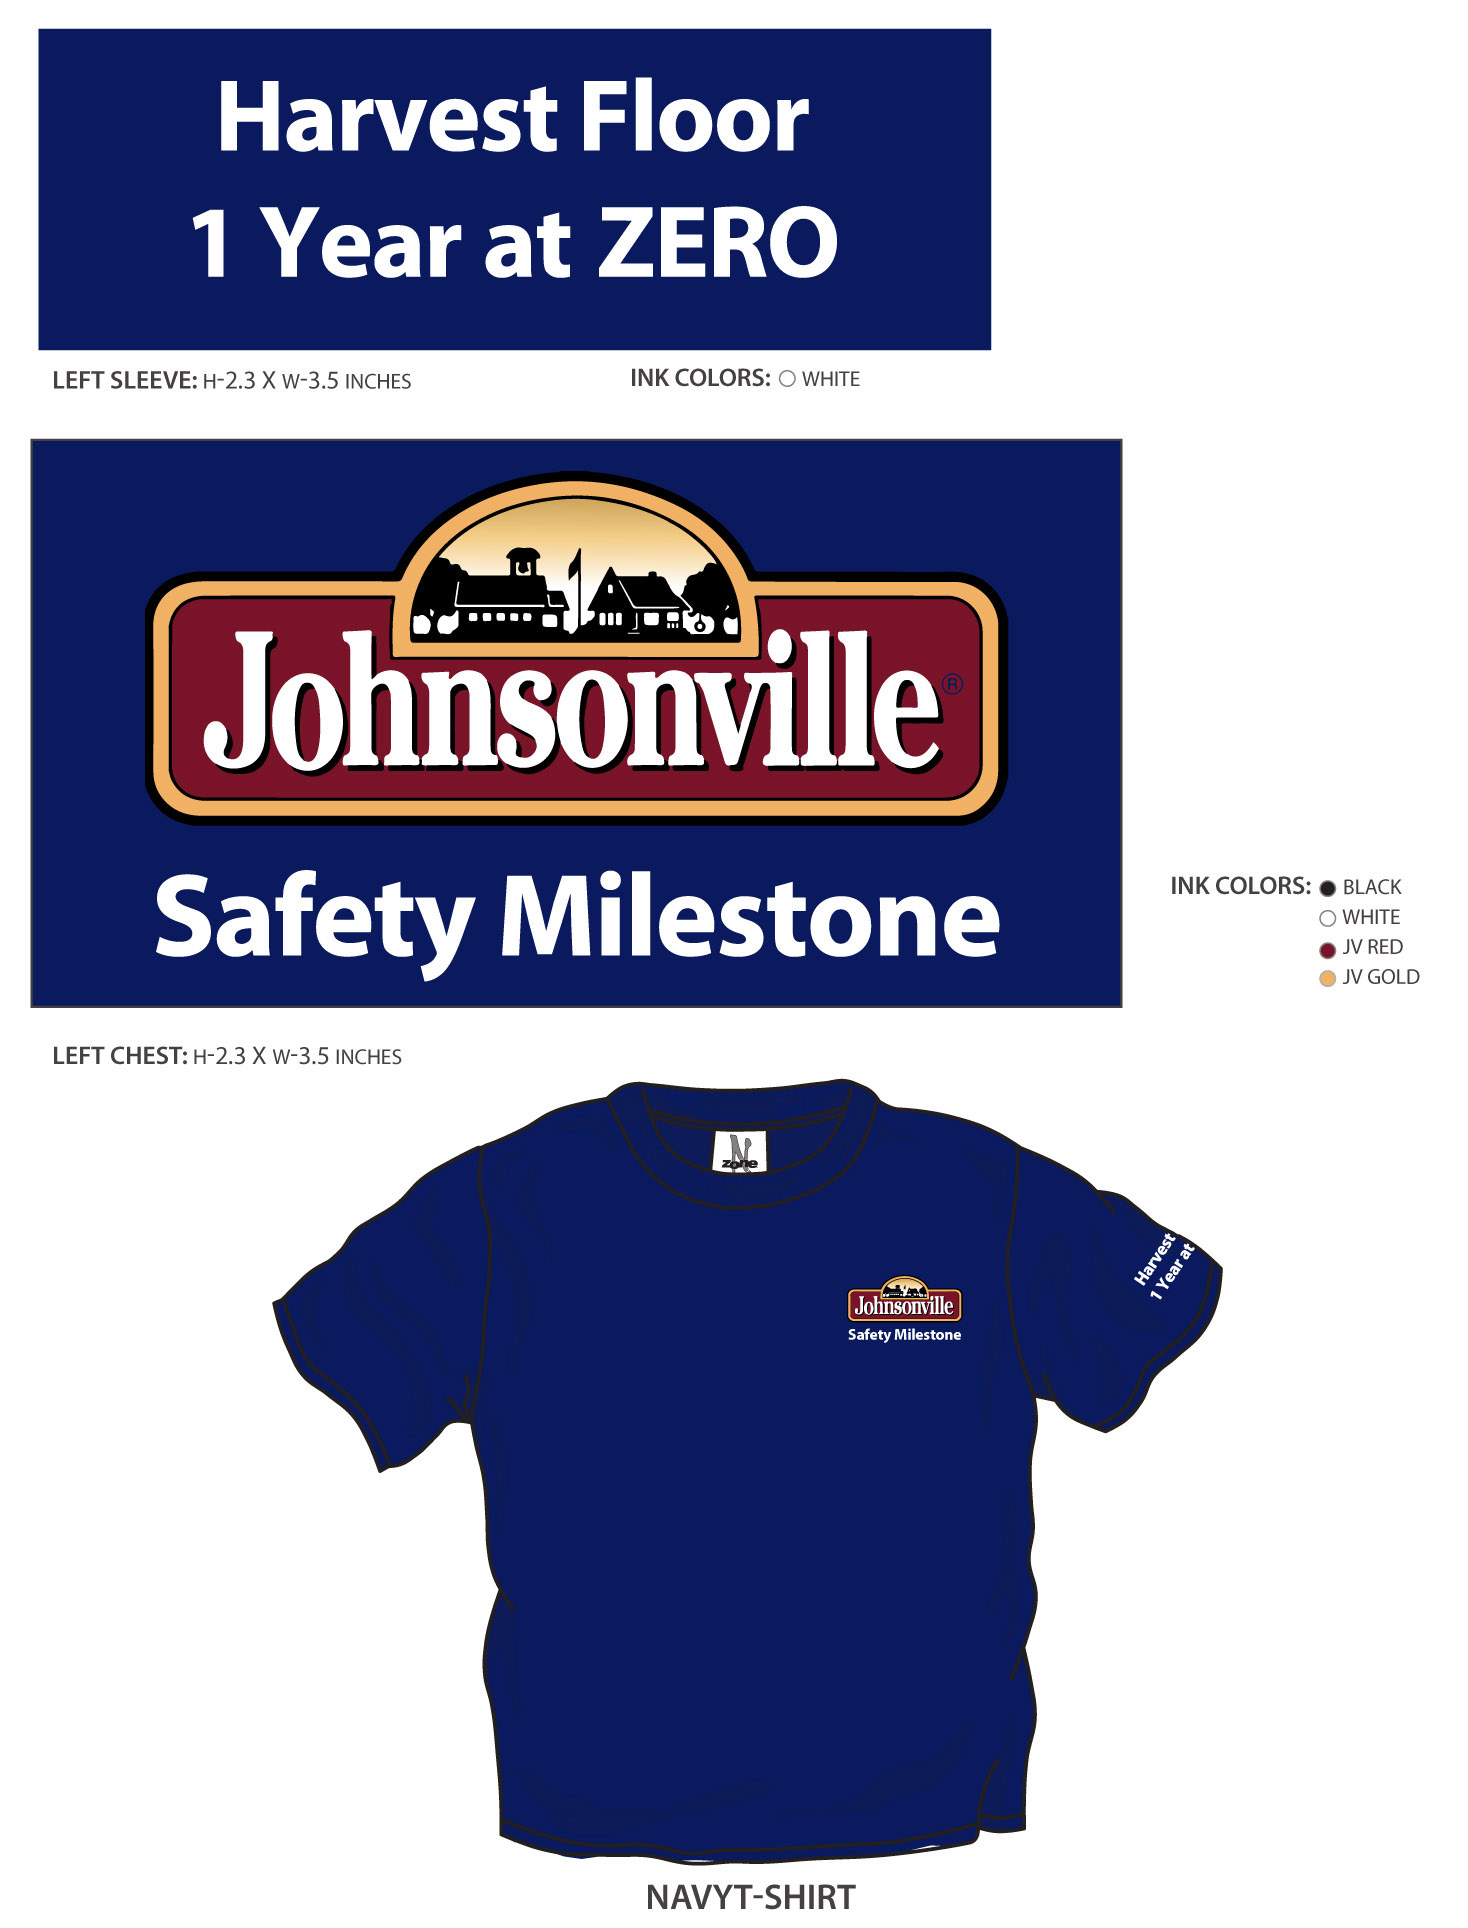 johnsonville safety